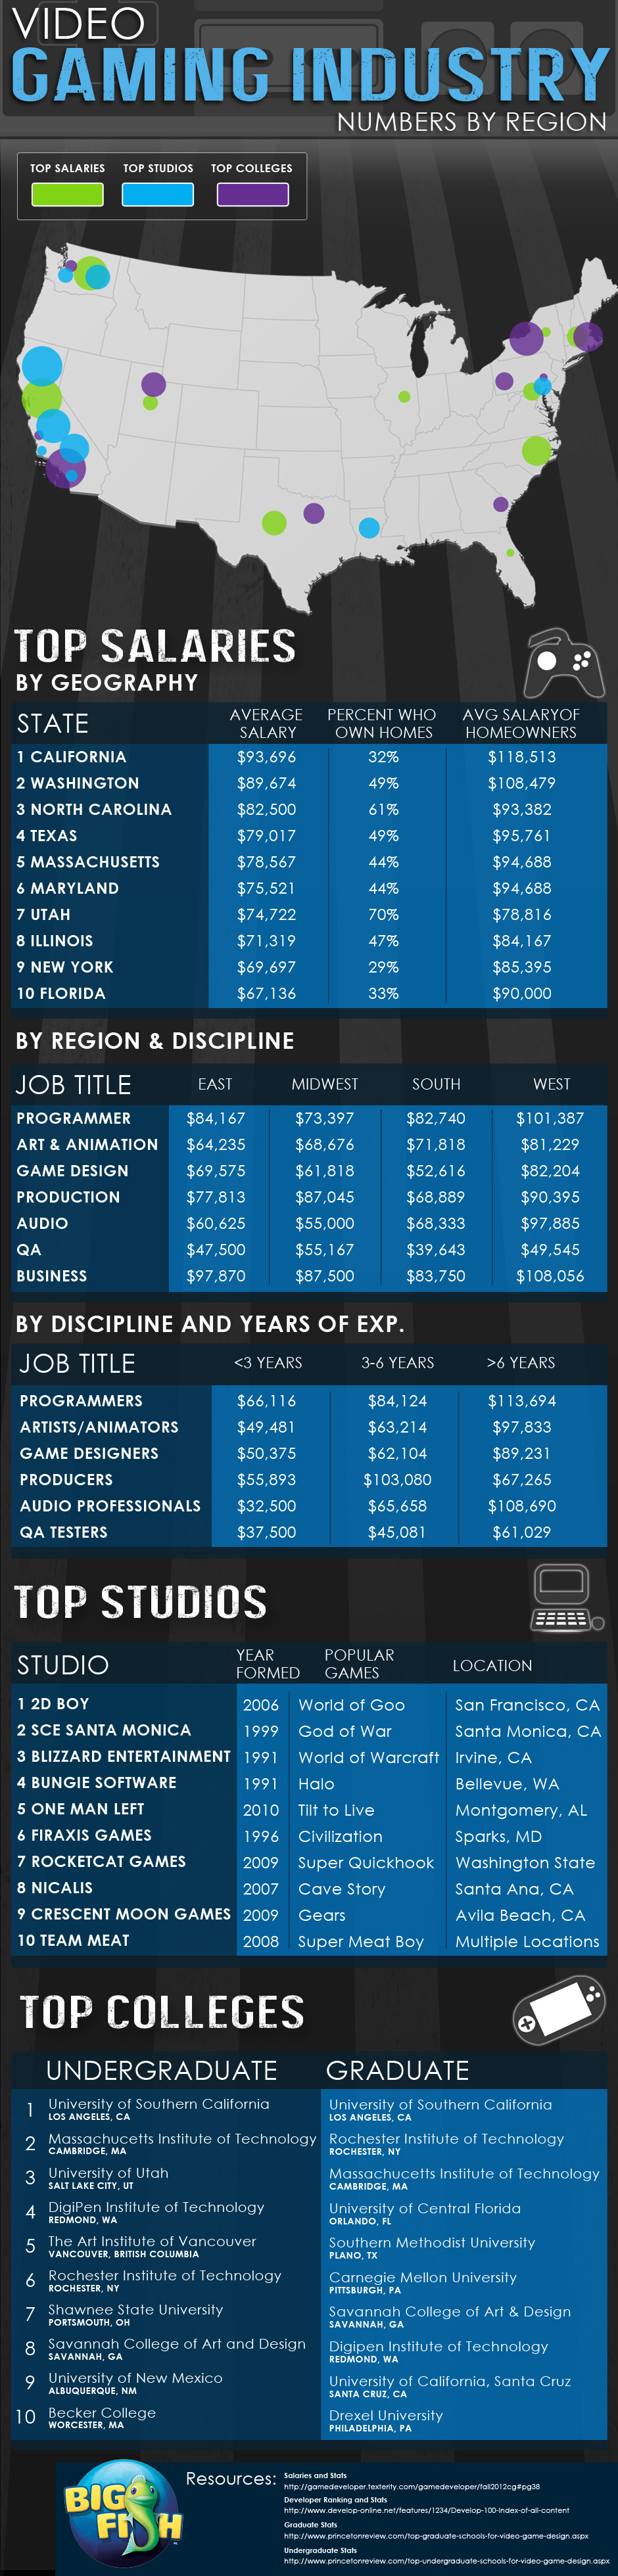 Video Game Industry Breakdown-Infographic